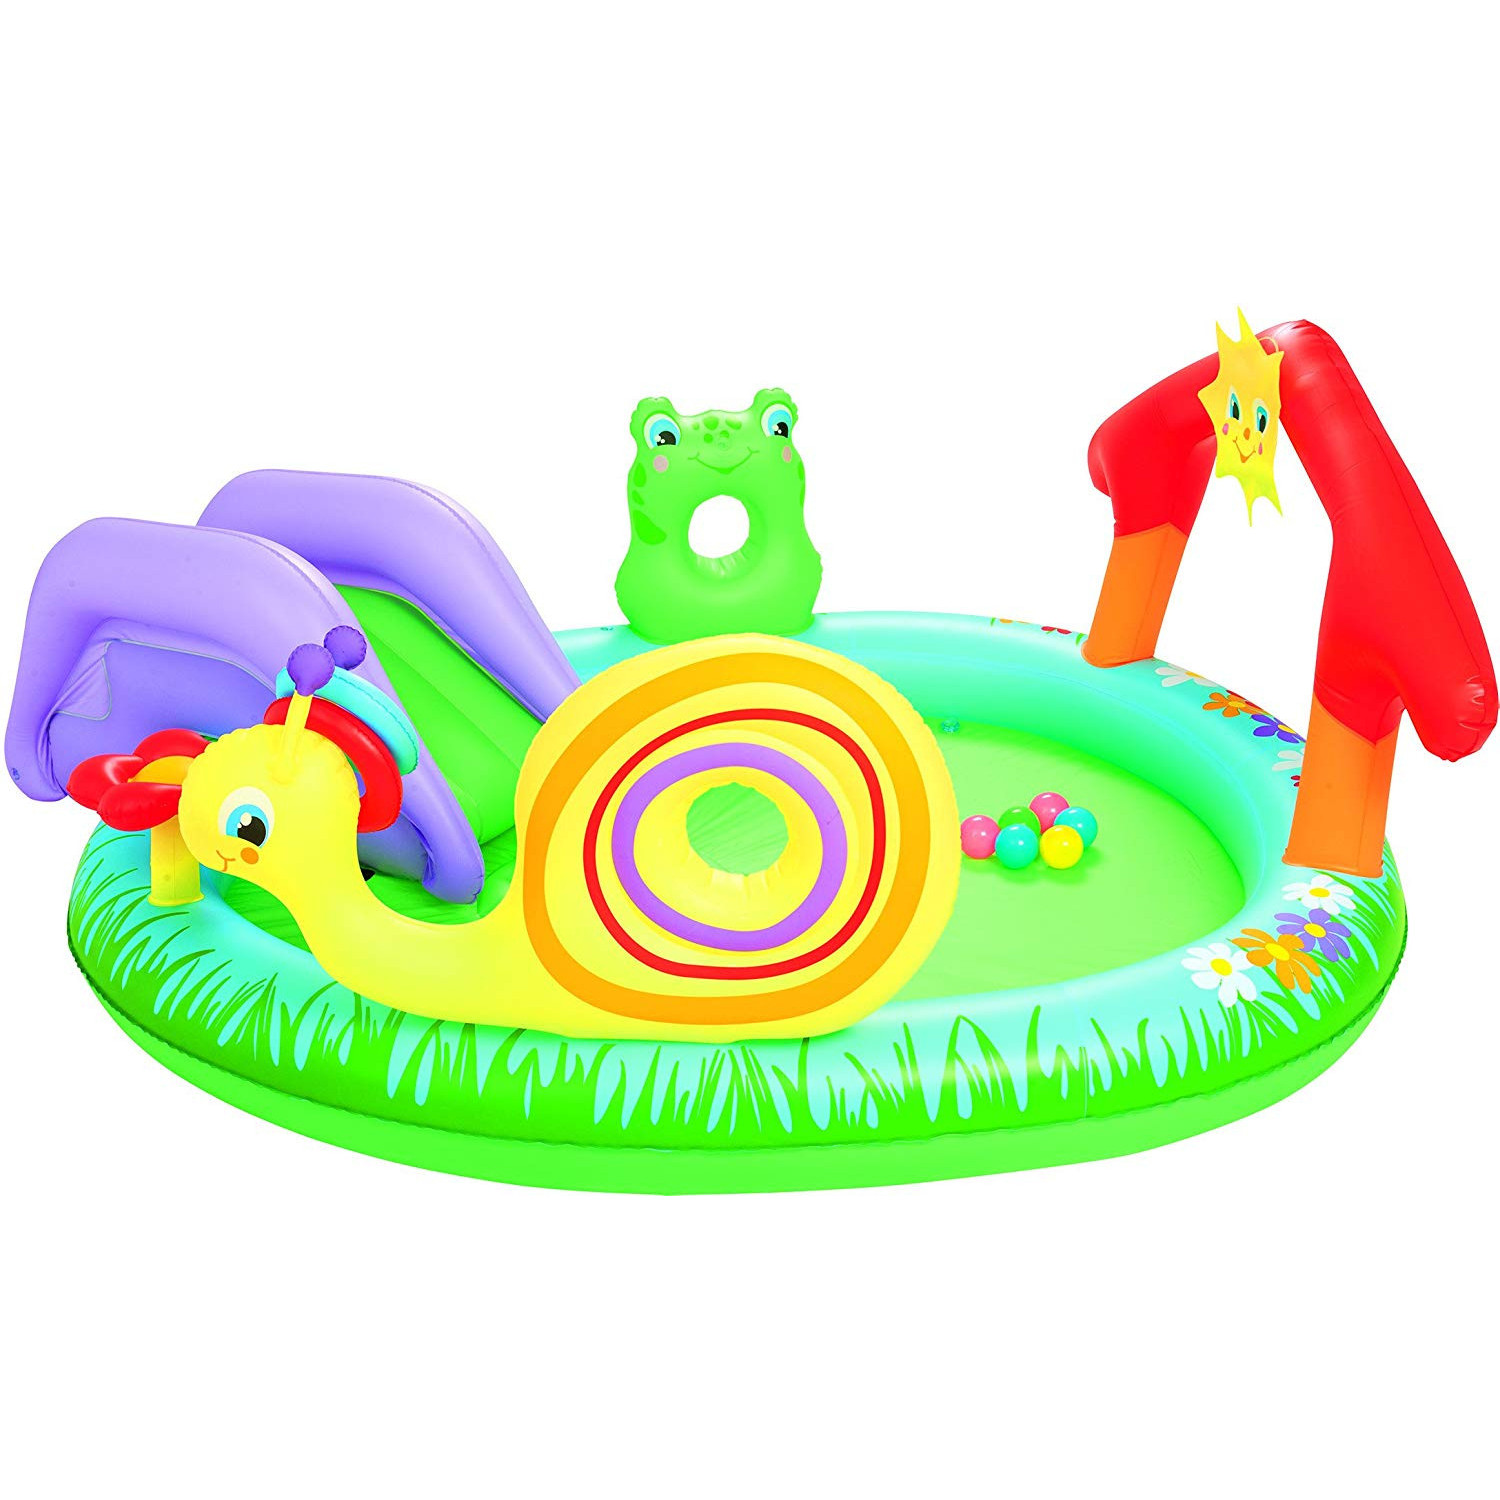 Bestway Inflatable Pool Child Play & Grow 211 Cm X 155 Cm X 81 Cm-53055-